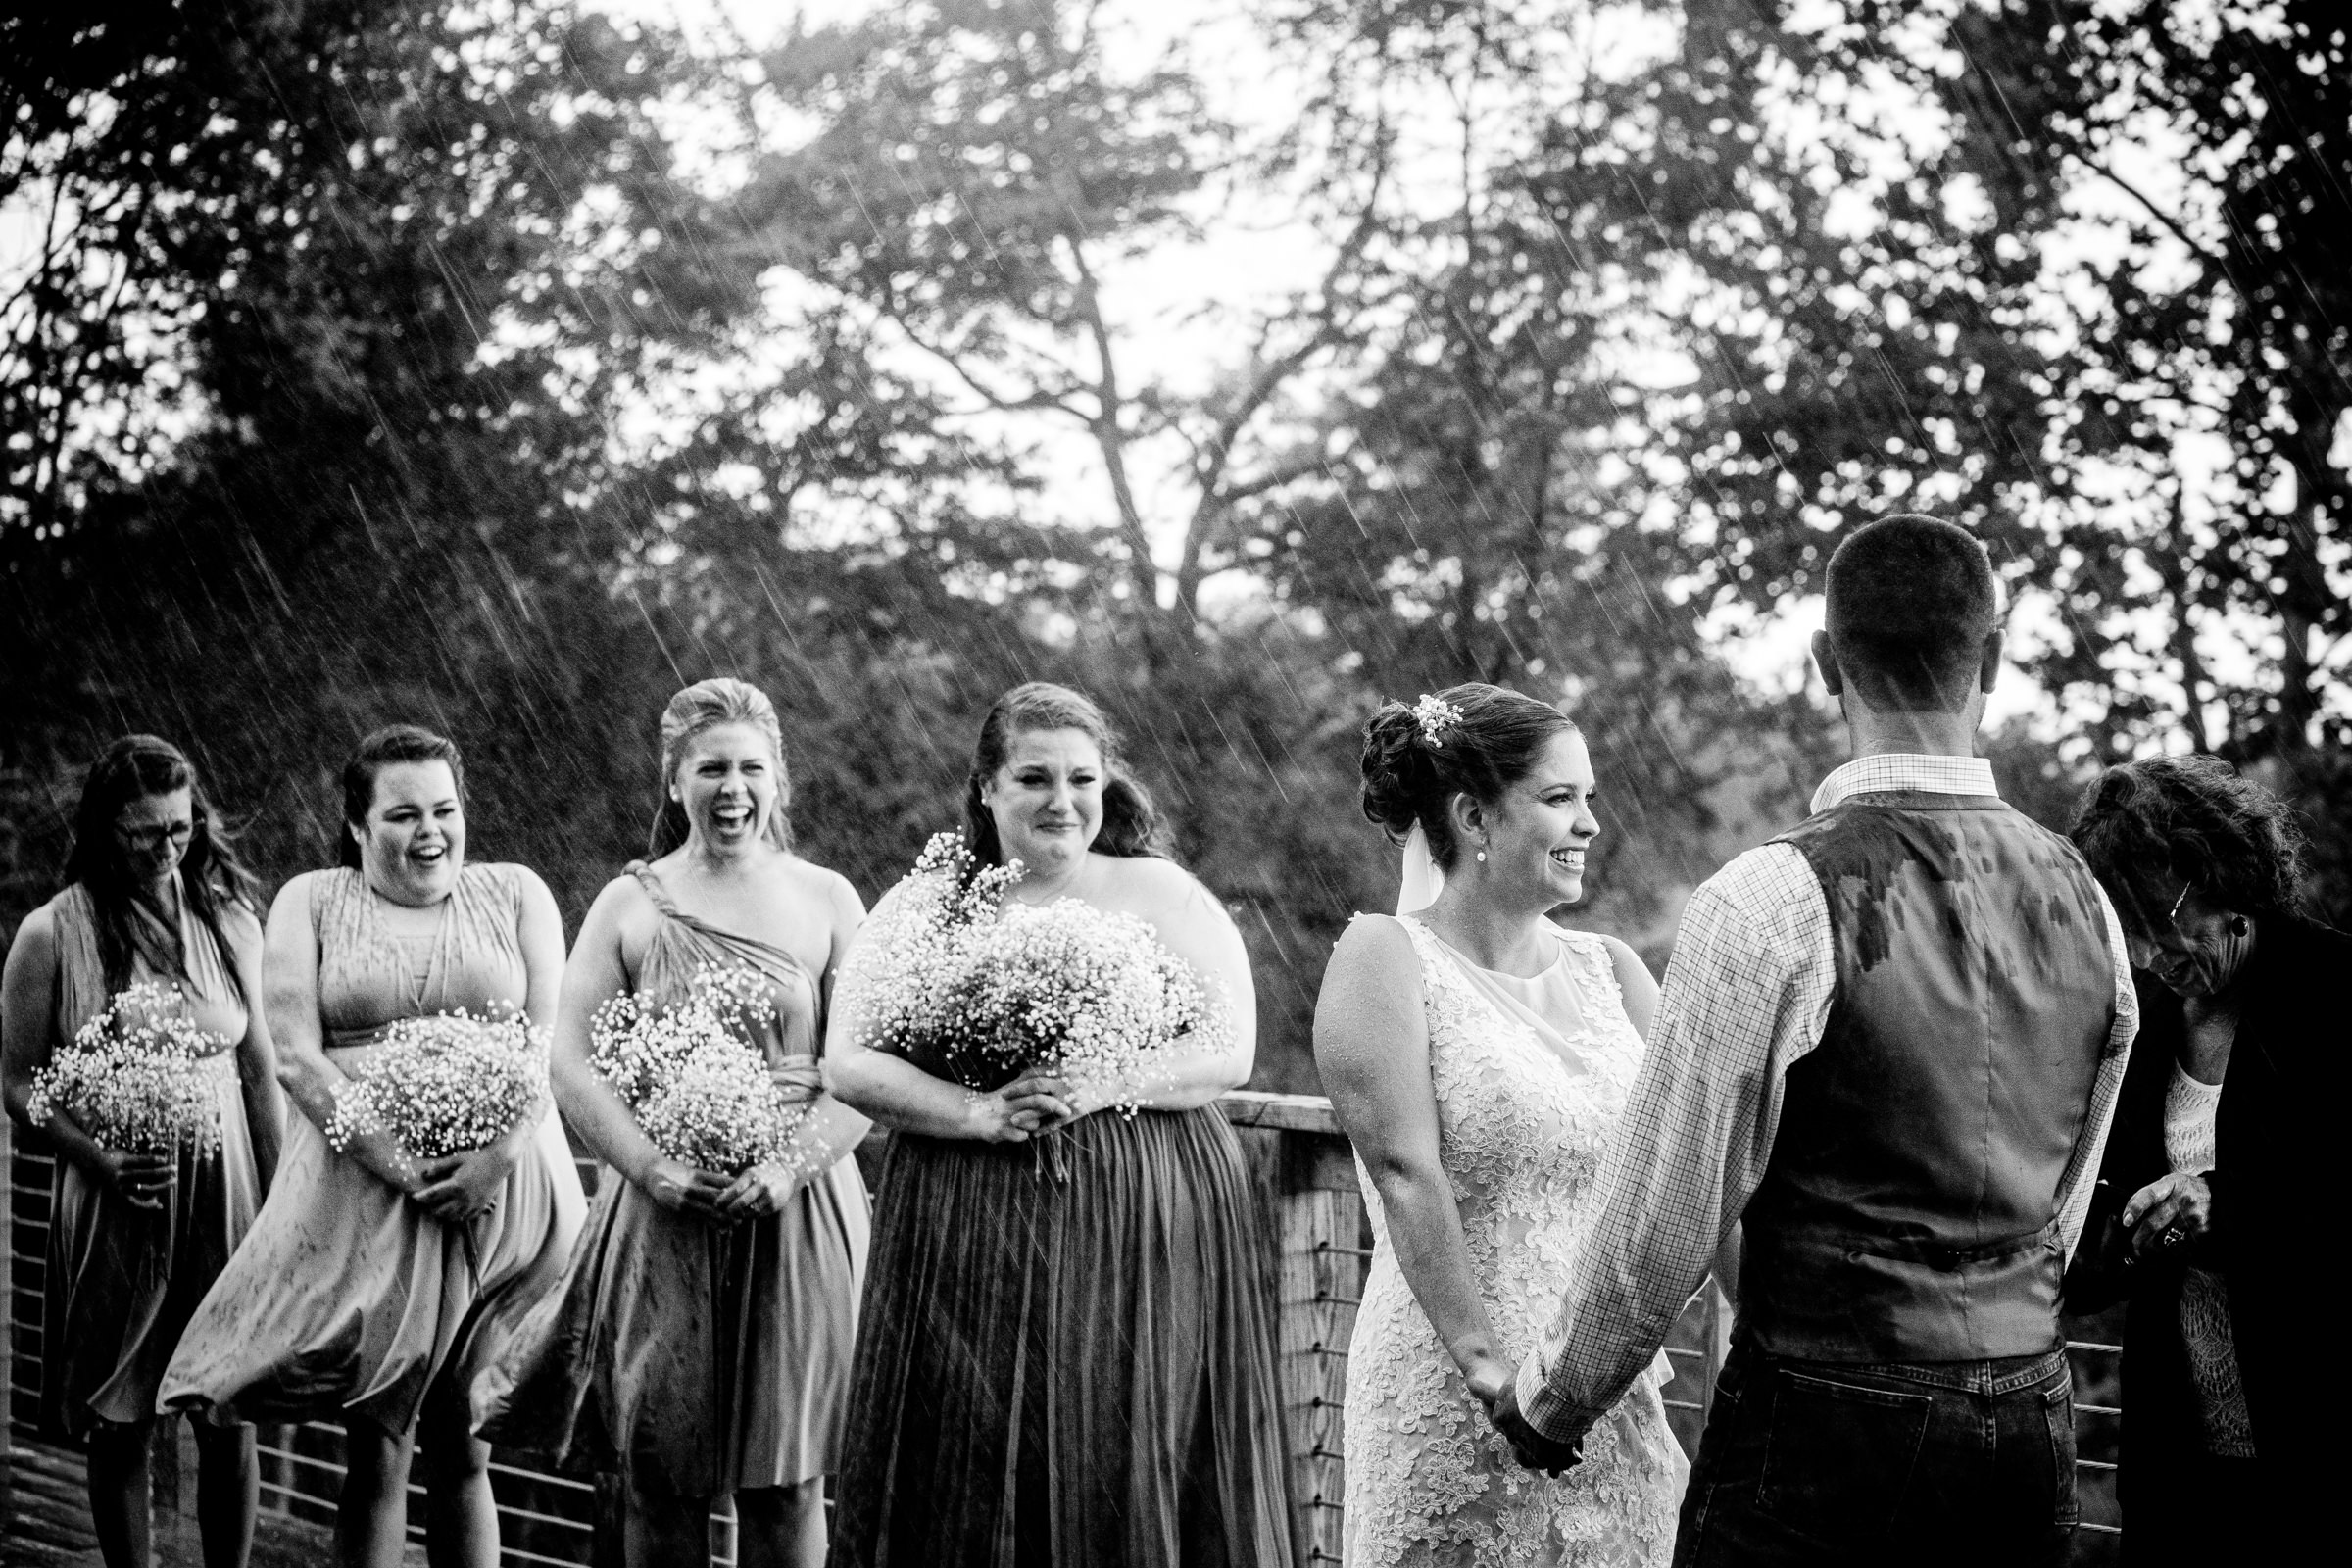 Bride and bridesmaids react to ceremony in the pouring rain - photo by Bee Two Sweet